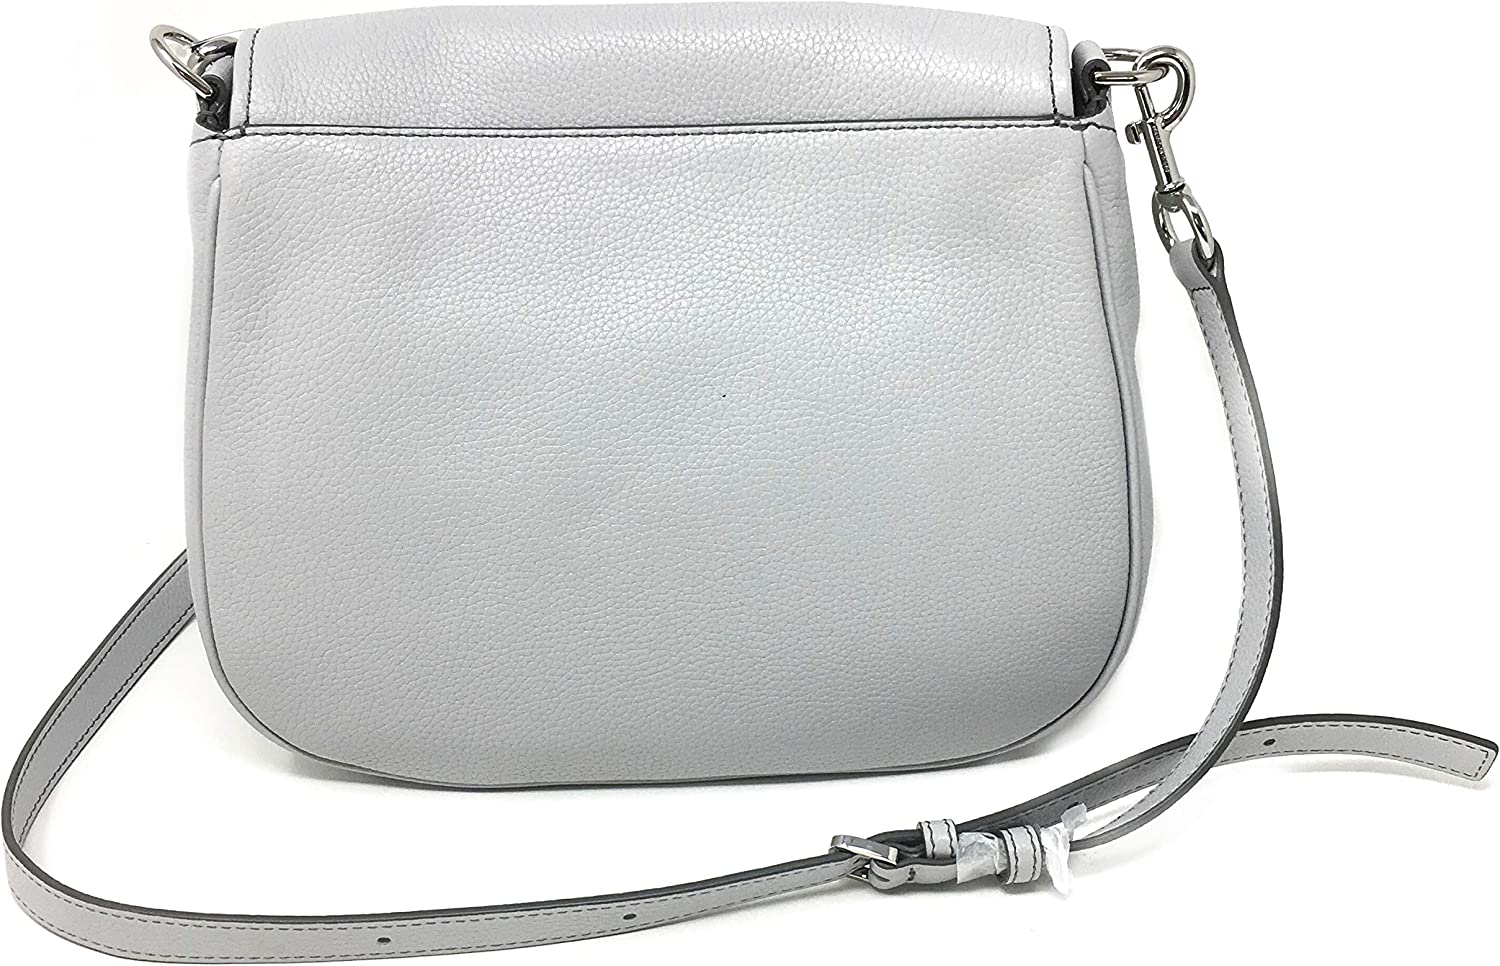 Light Grey Marc Jacobs Womens Shoulder Bag Style #M0013046 Pebbled Leather